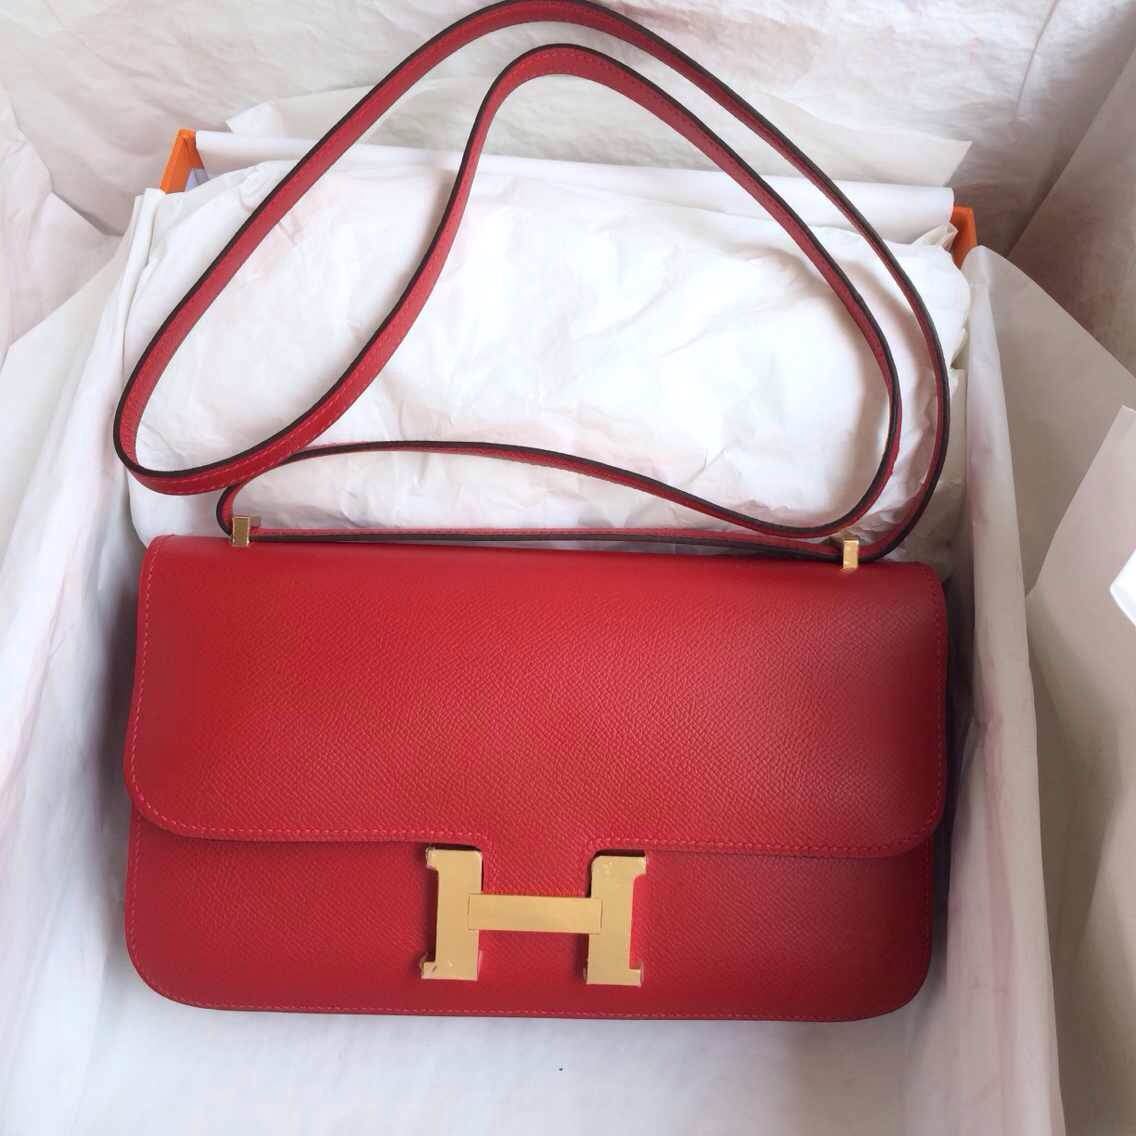 Hermes Constance Bag 26cm Q5 Candy Red Epsom Leather Silver/Gold Hardware